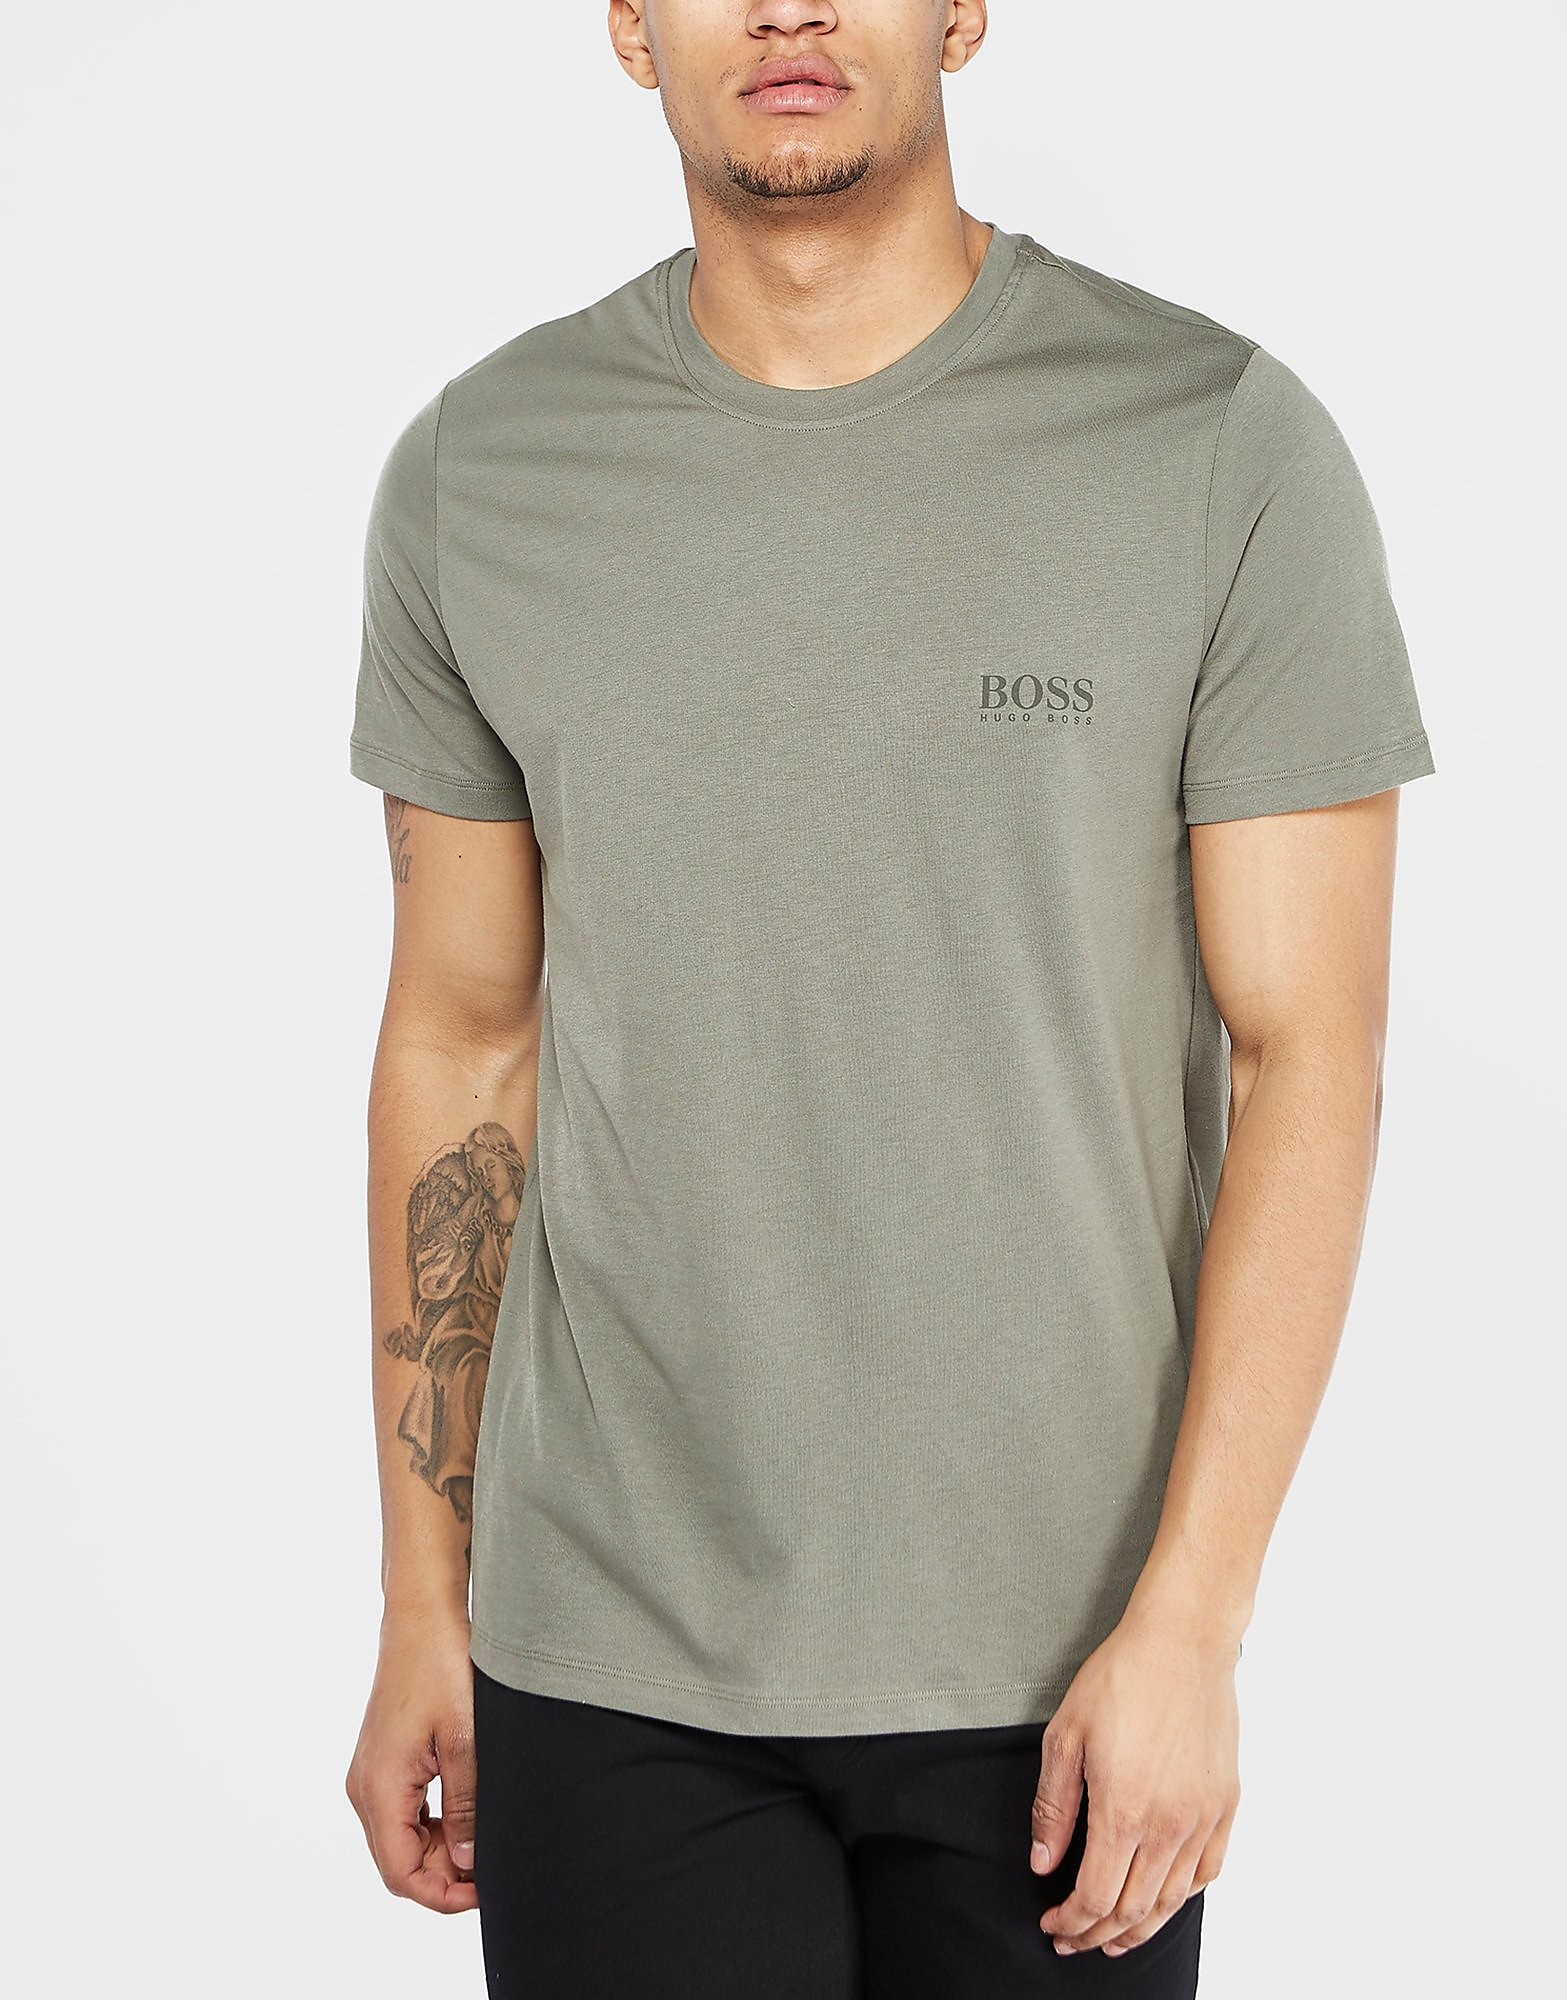 BOSS Core Short Sleeve T-Shirt